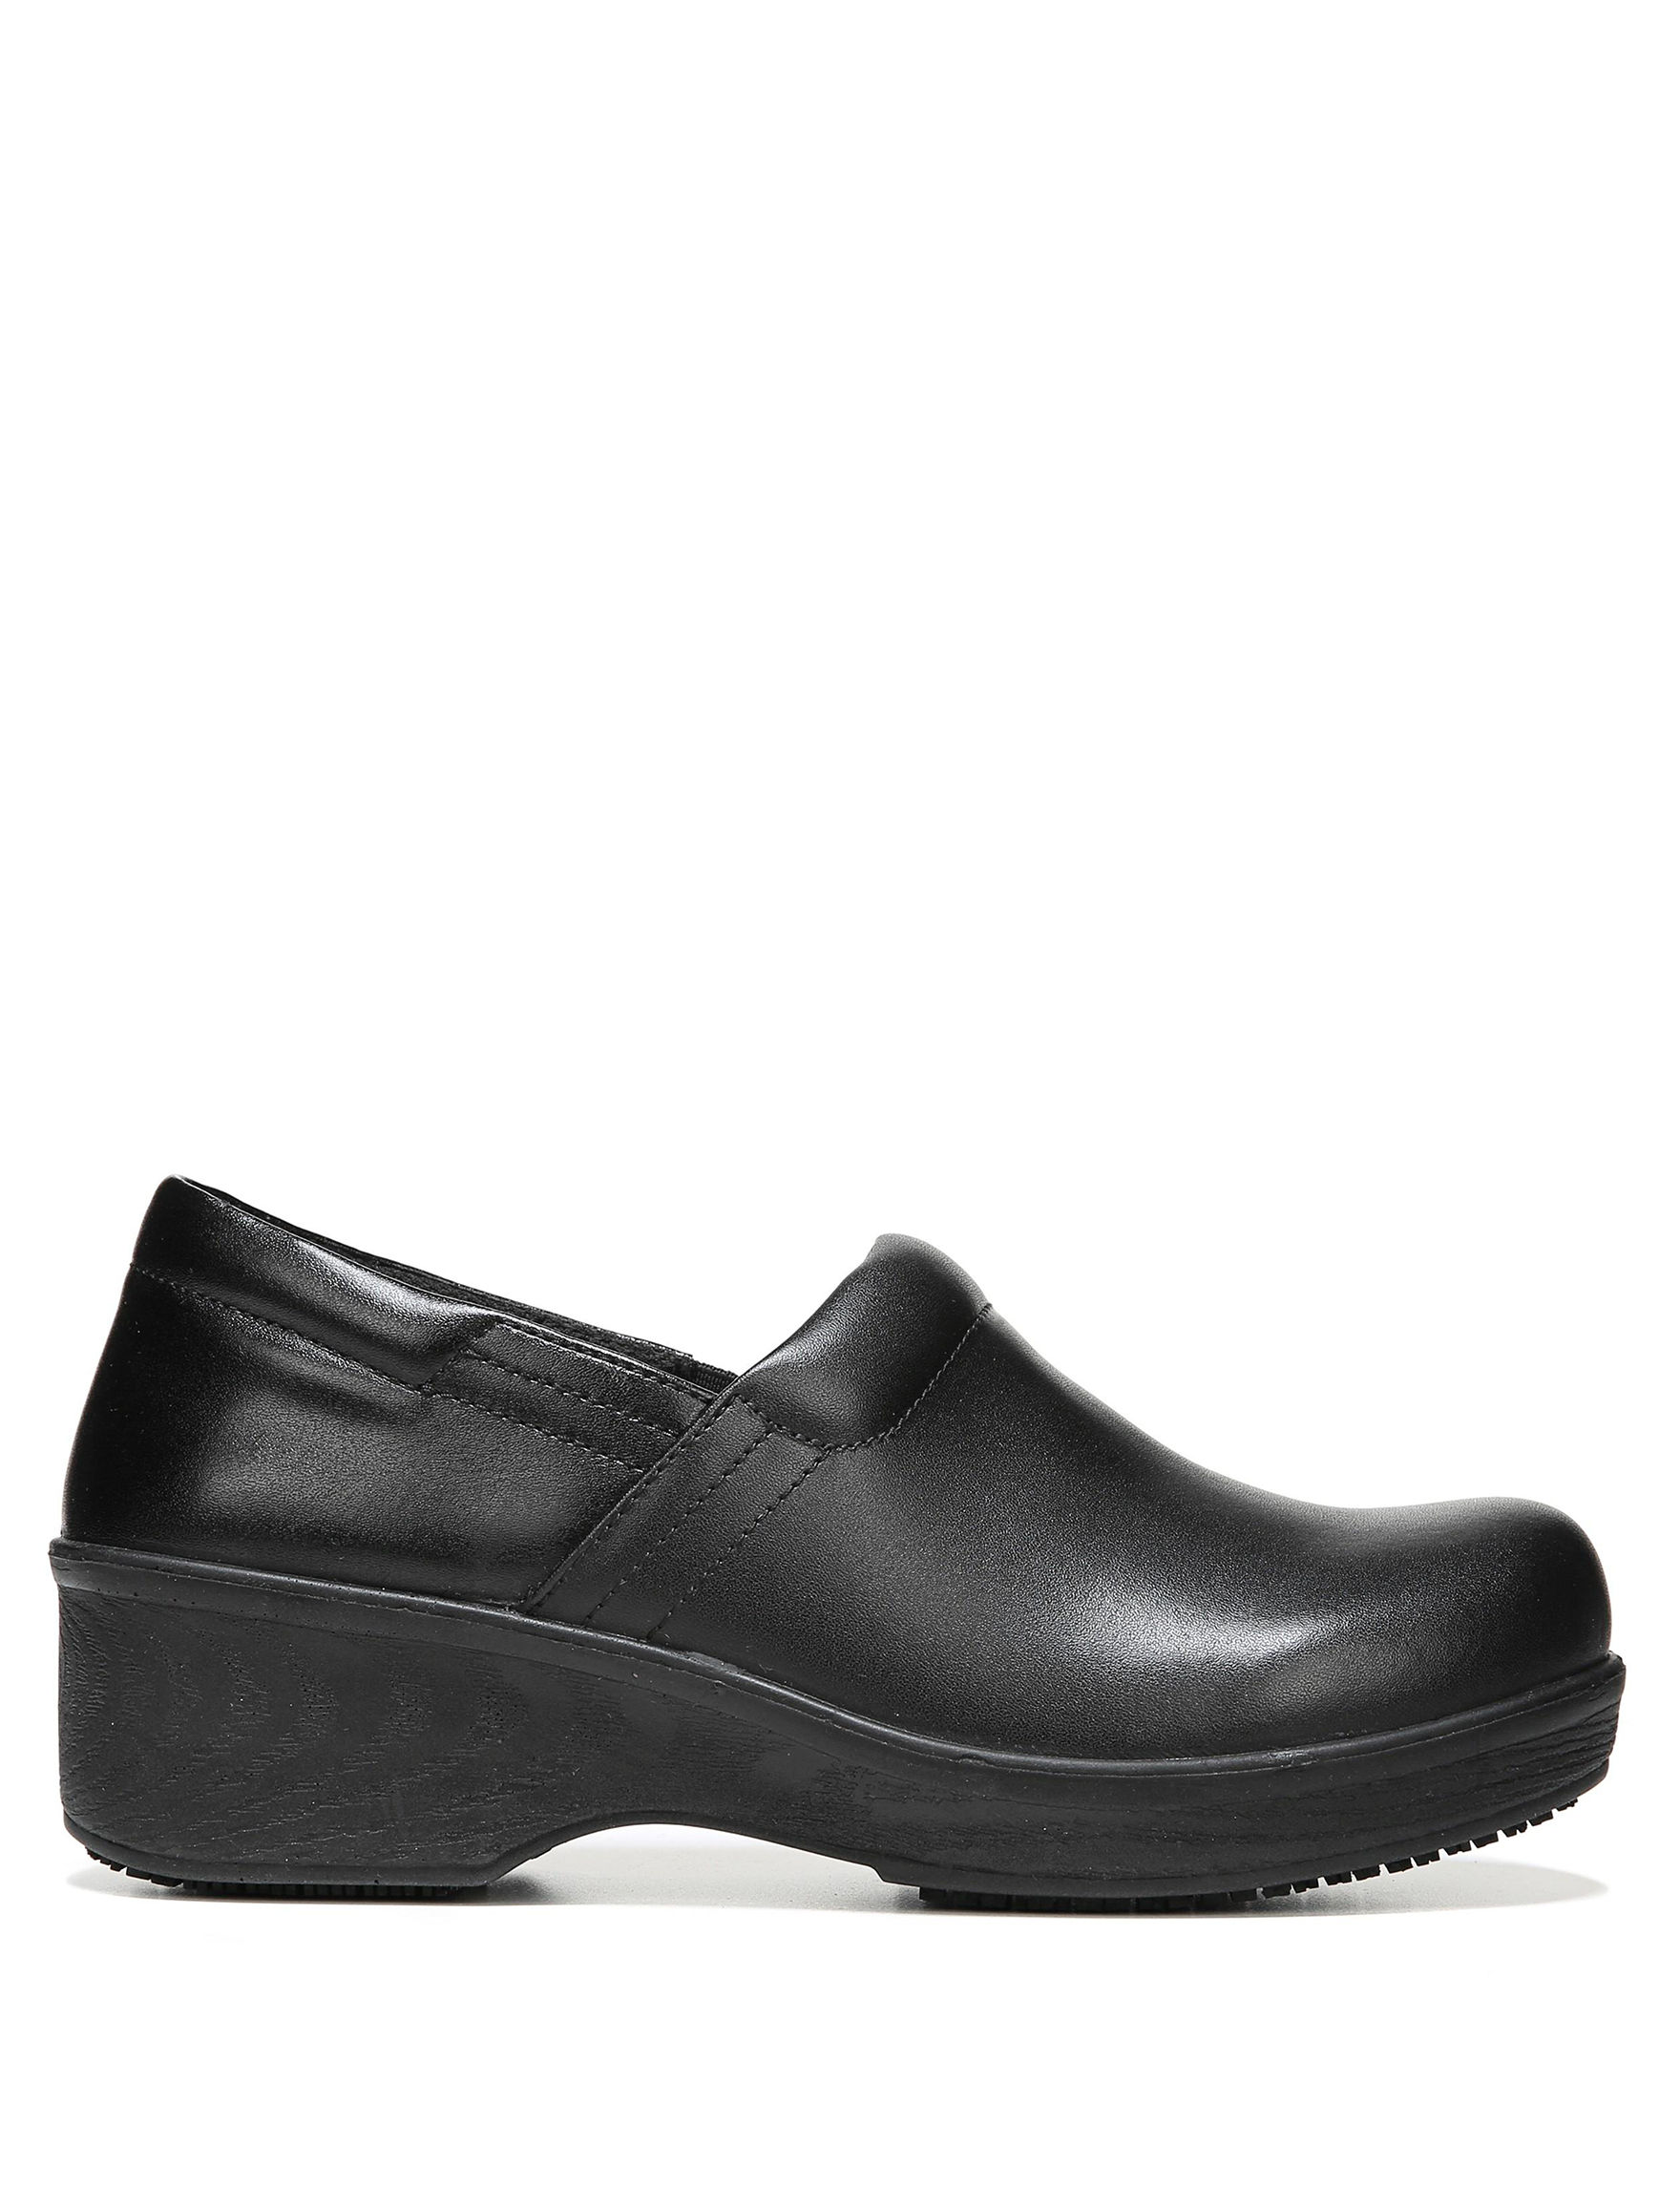 Dr. Scholl's Black Clogs Comfort Stretch